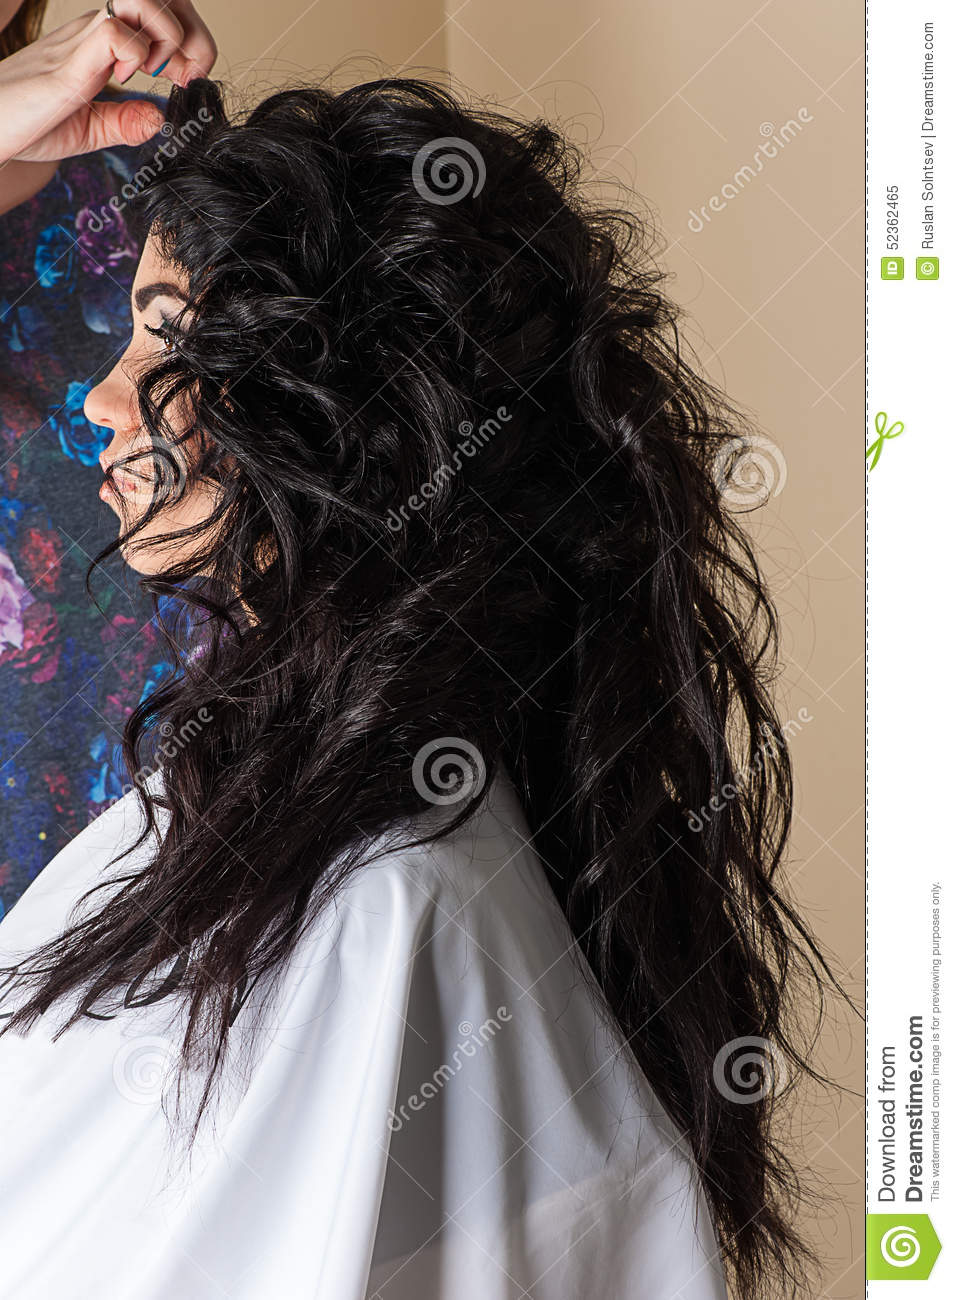 Woman with curly hair luxuriant in hair salon.